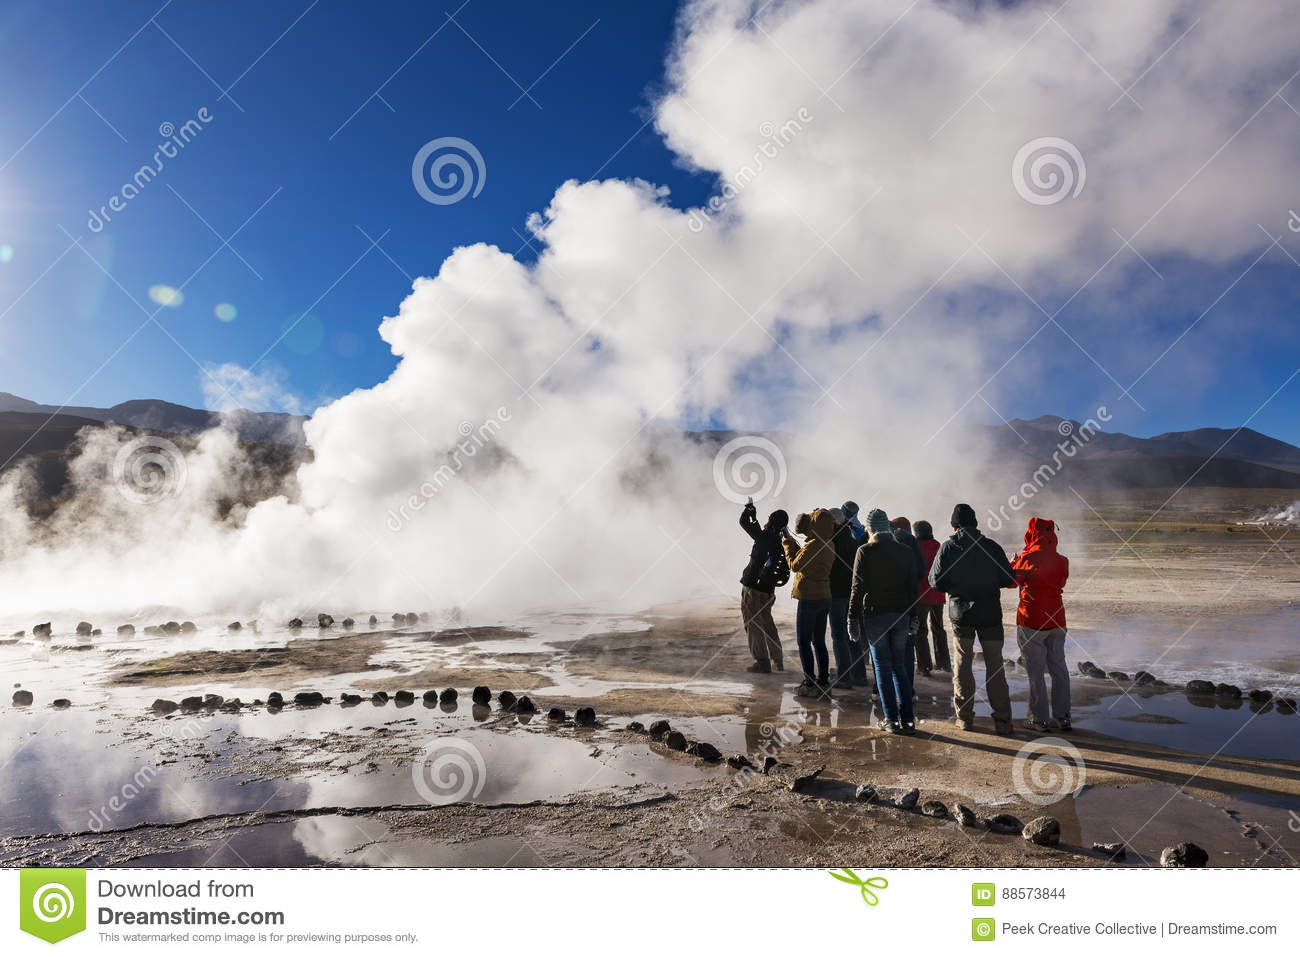 One buddy watching the geyser never